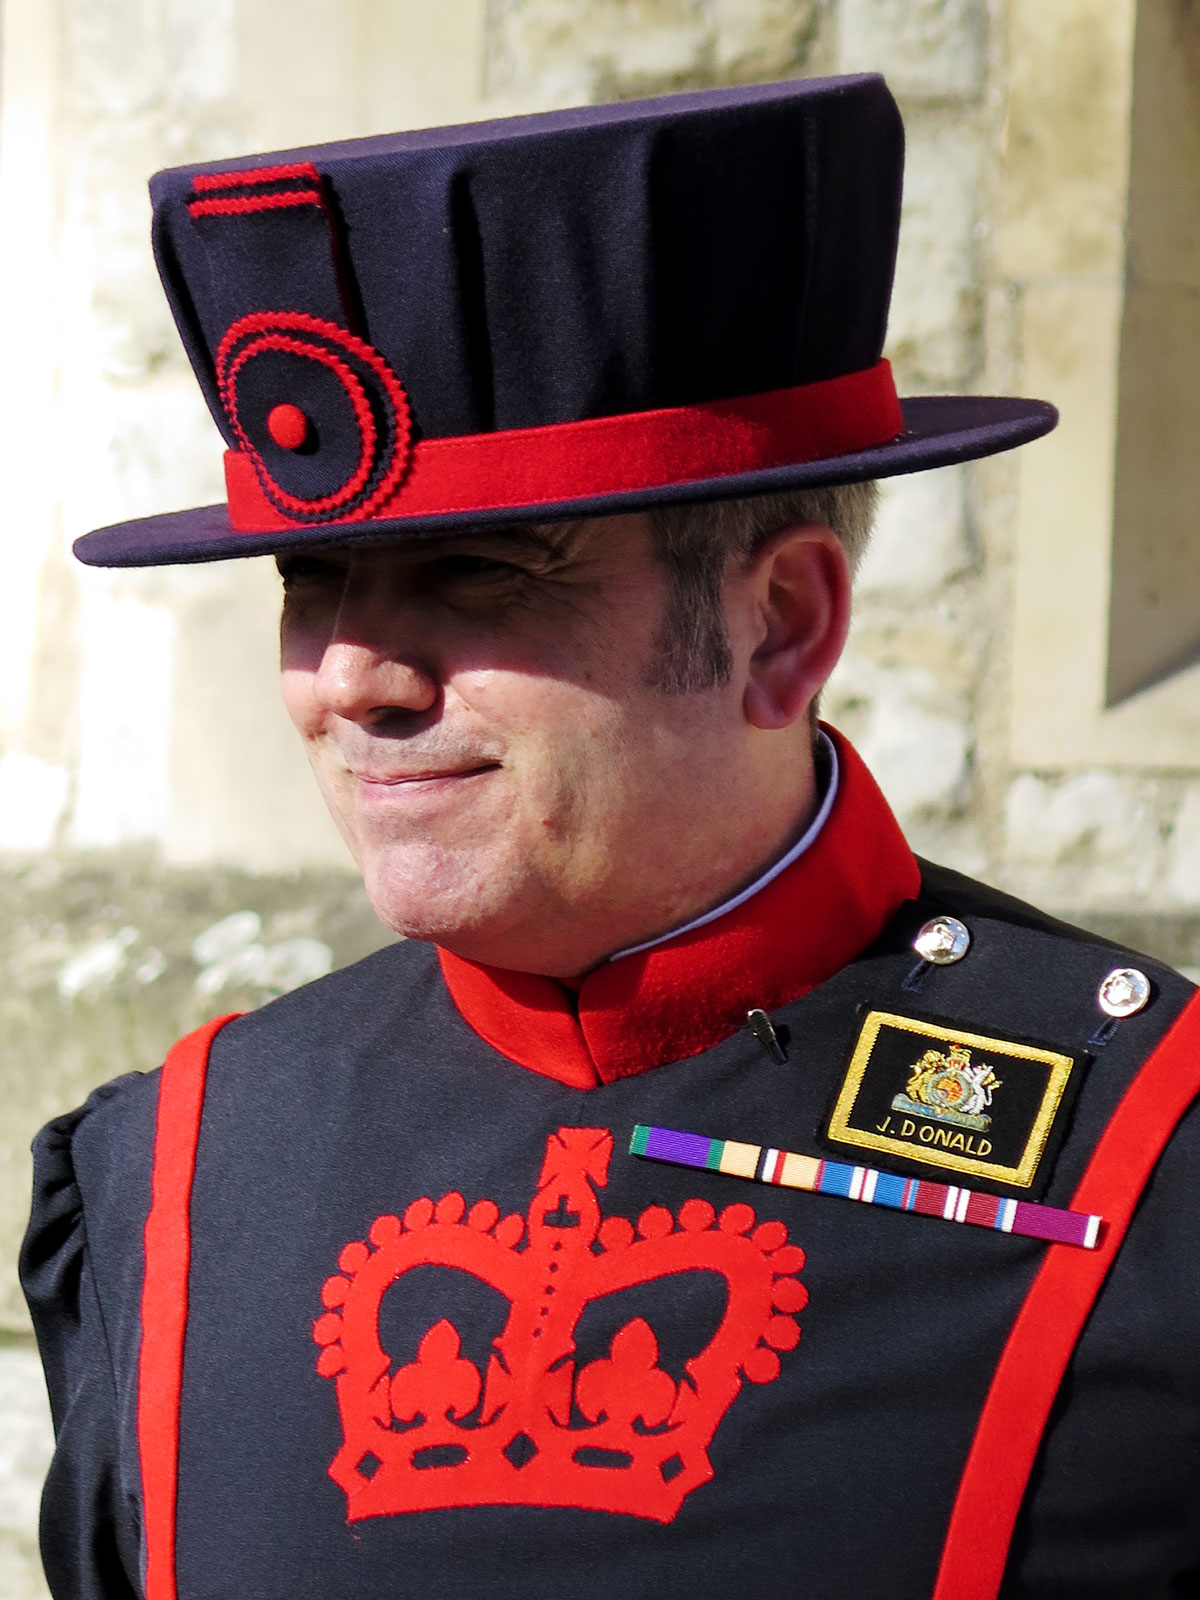 Yeoman Warder or 'Beefeater'